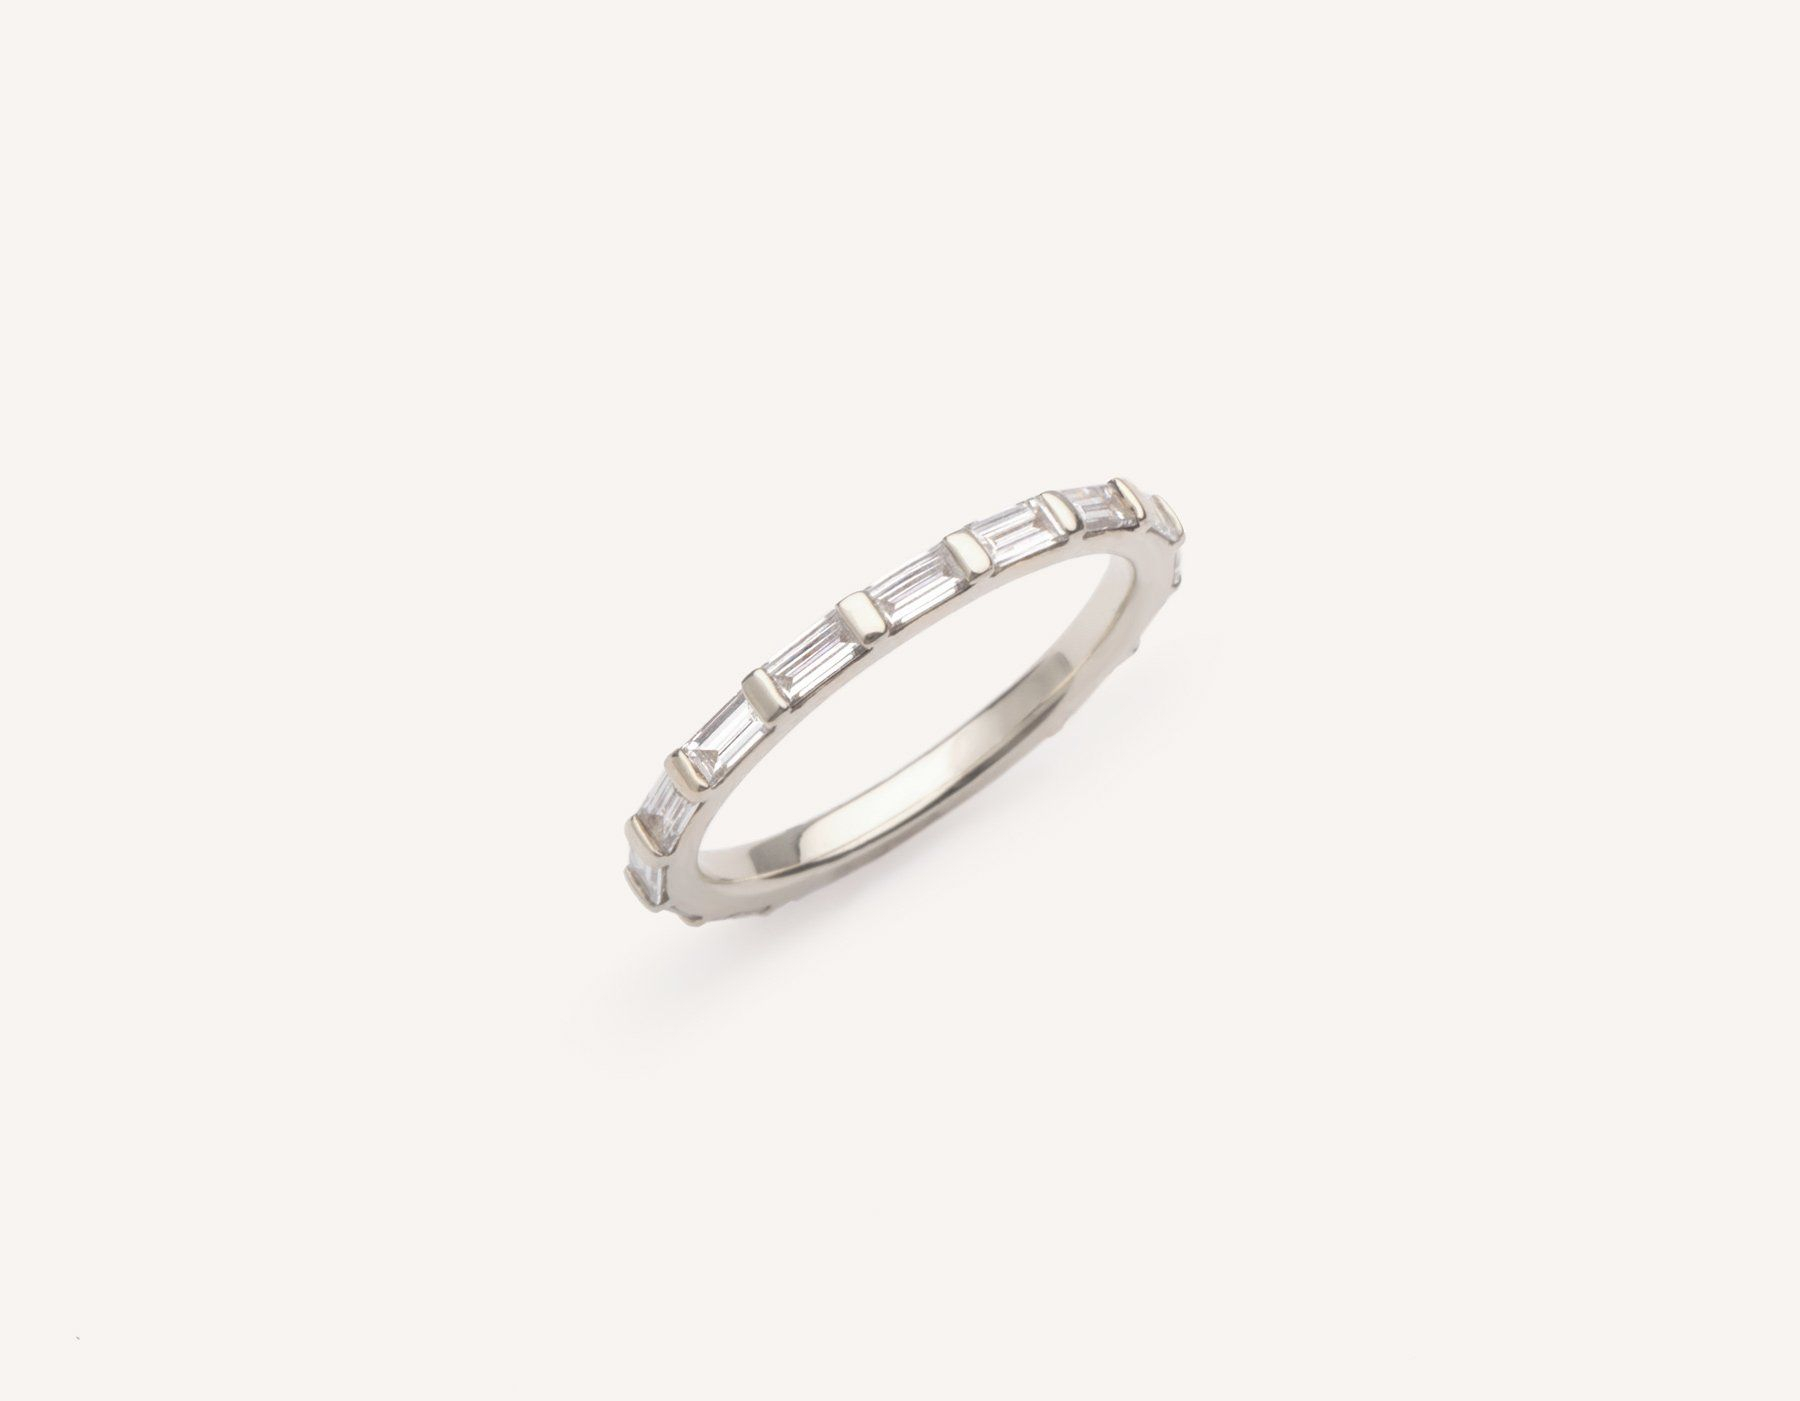 Minimalist 18k Solid White Gold Baguette Diamond Infinity Regarding Most Up To Date Micropavé Diamond Dome Wedding Bands (View 10 of 25)